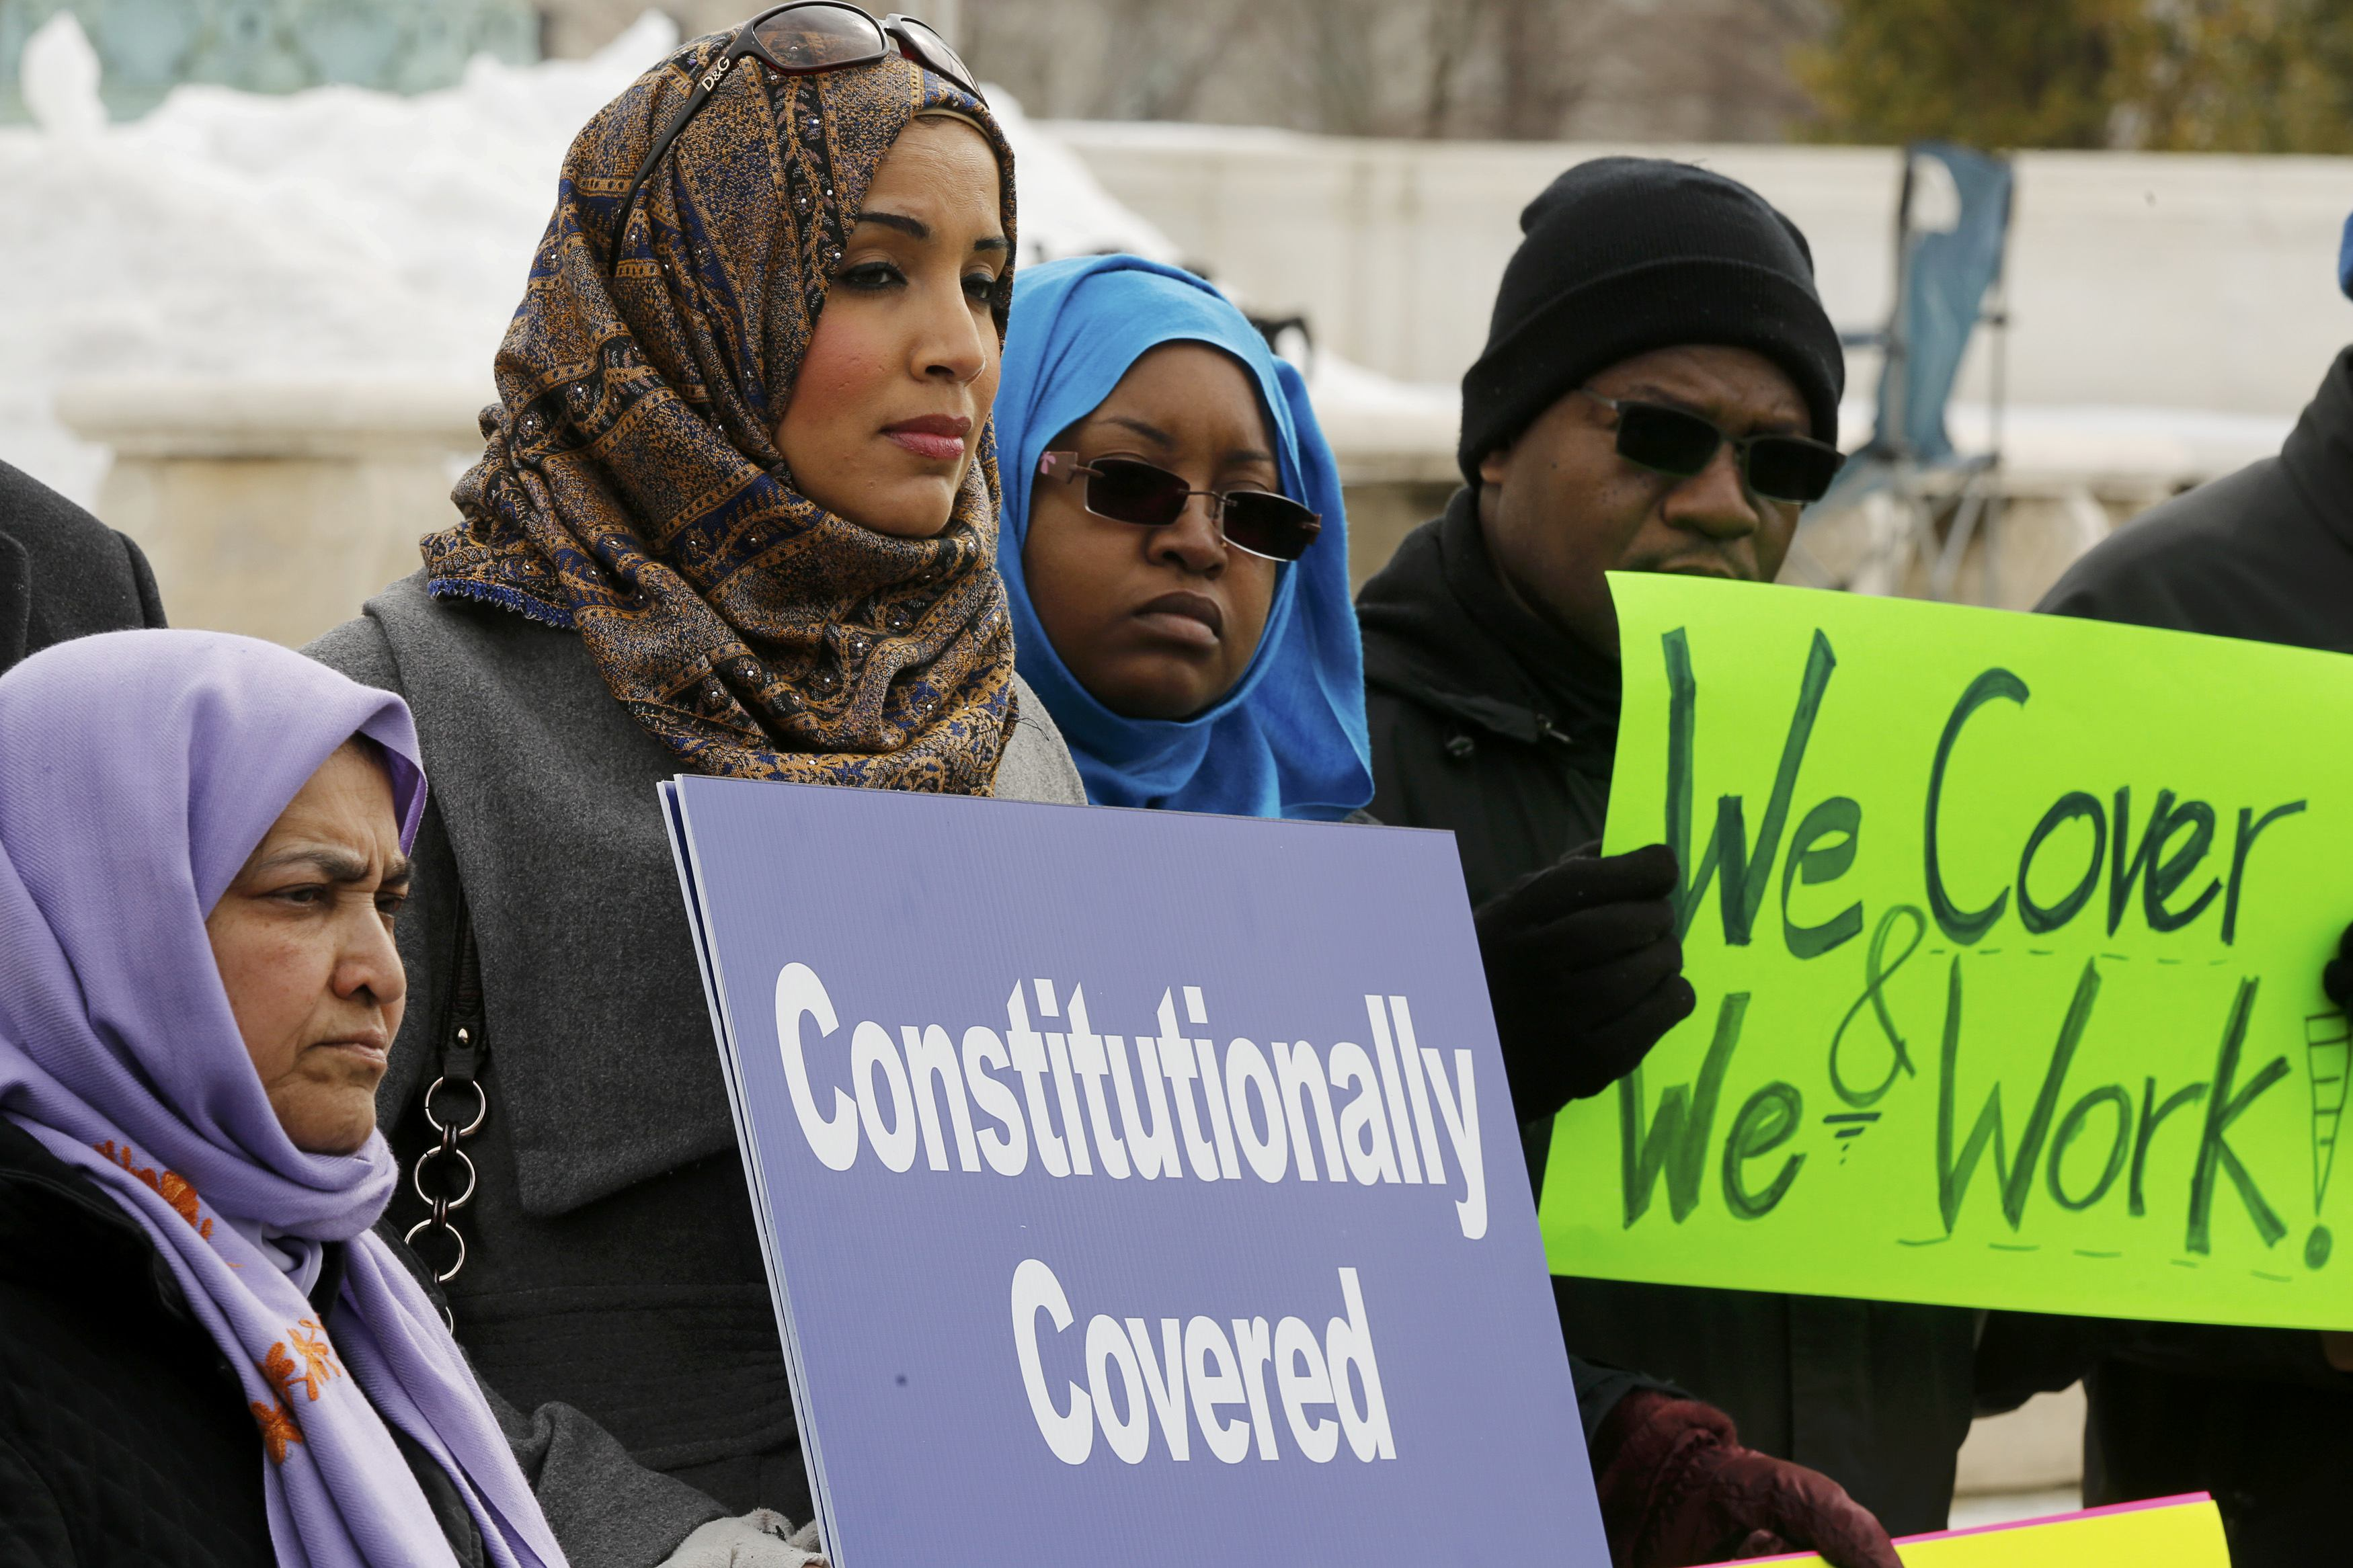 Demonstrators gather outside the U.S. Supreme Court as the court hears arguments in the case of Muslim woman Samantha Elauf. Photo credit: Jim Bourg / Reuters.